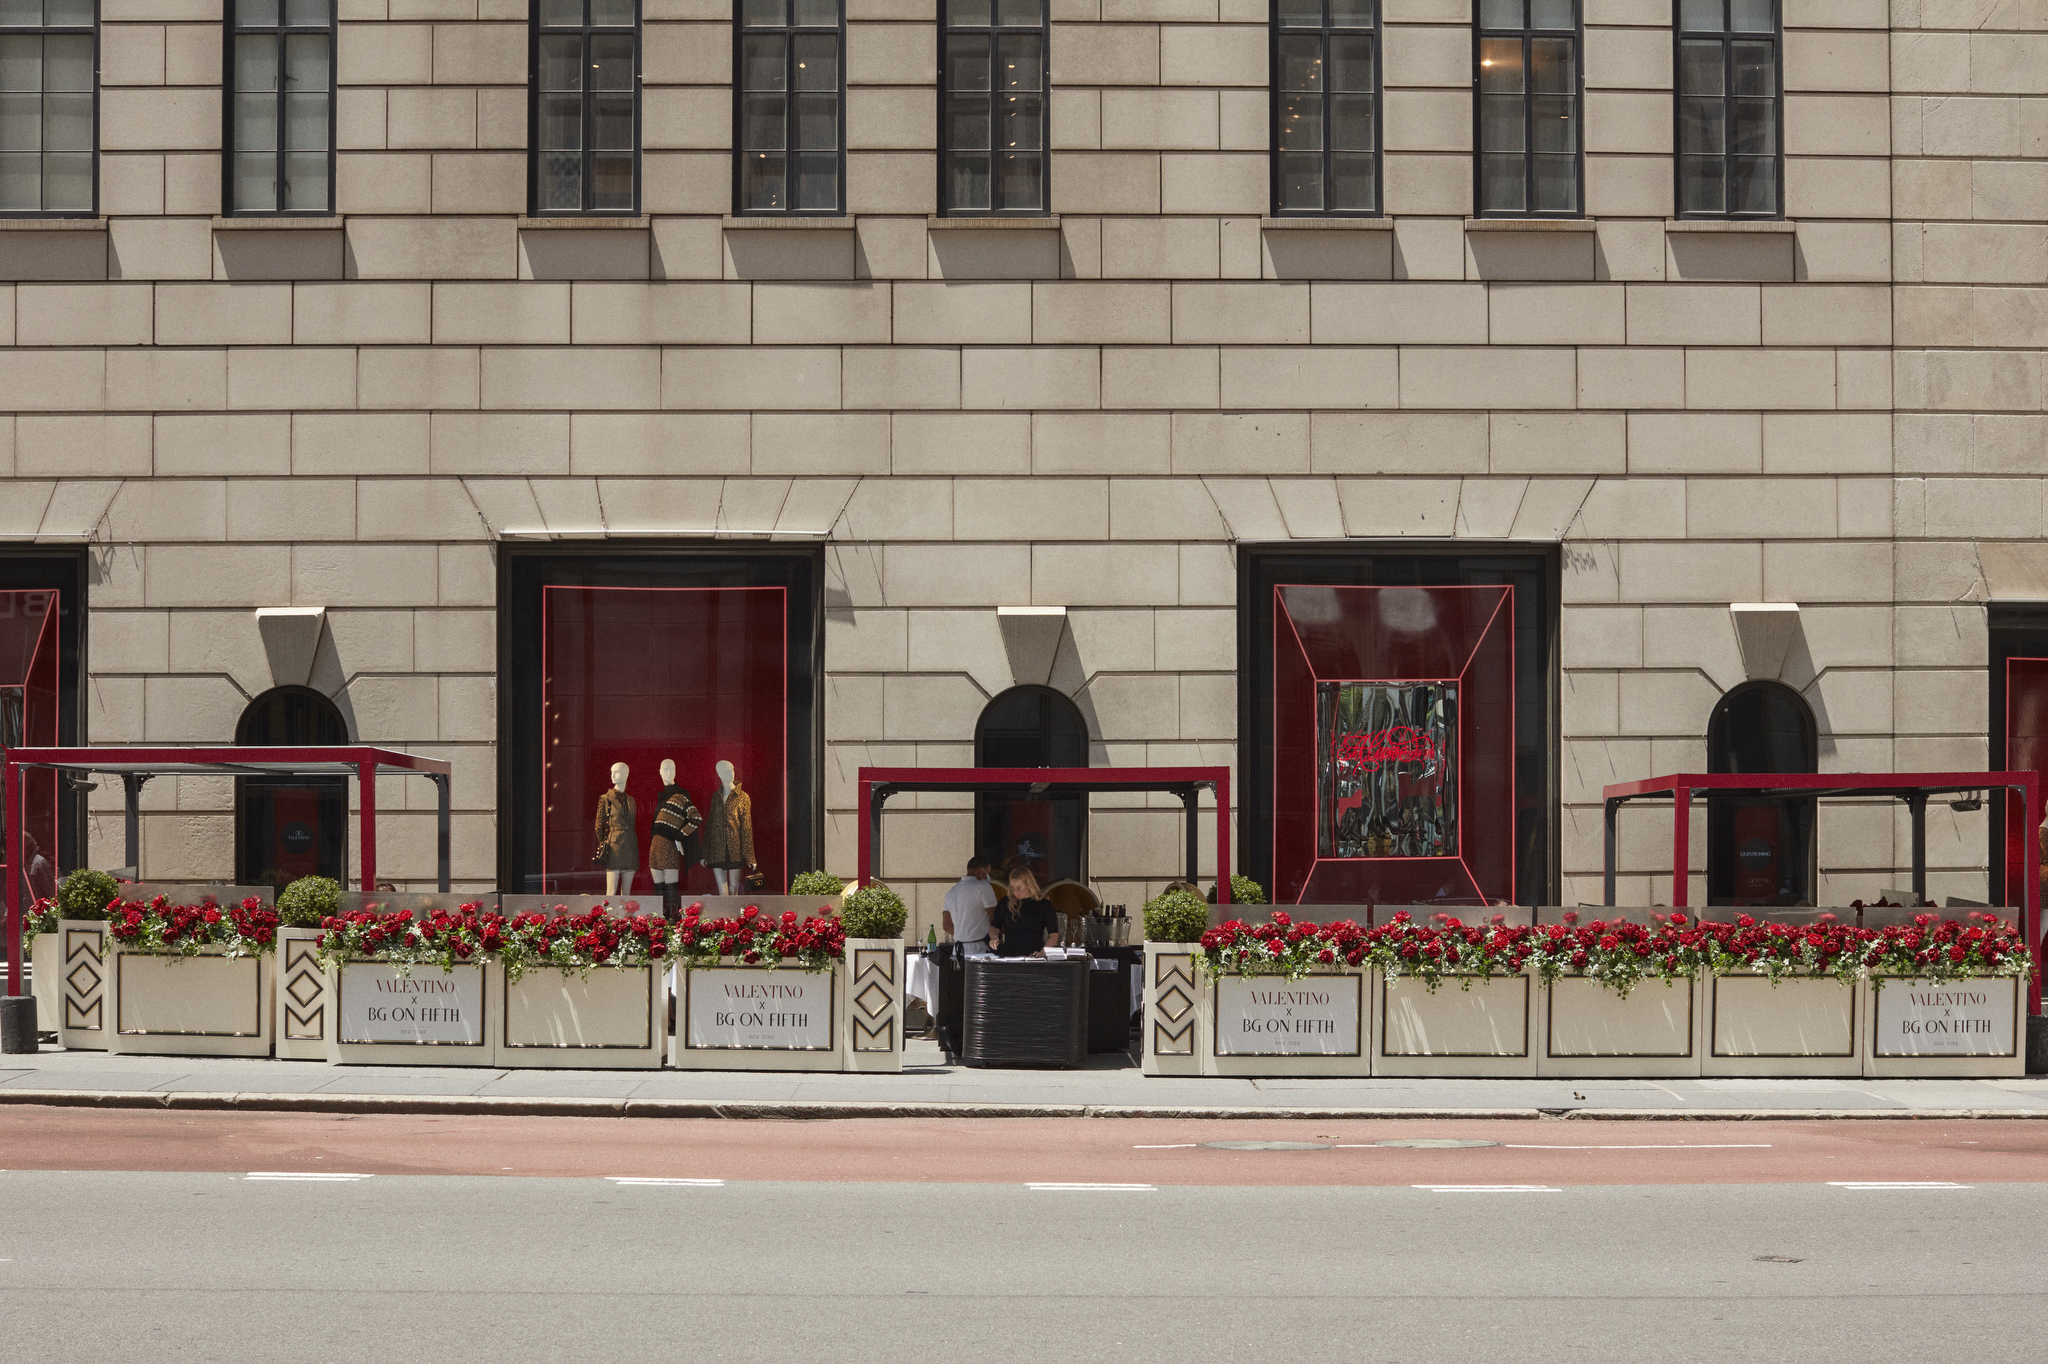 Valentino themed shops at Bergdof Goodman's Fifth Avenue flagship.